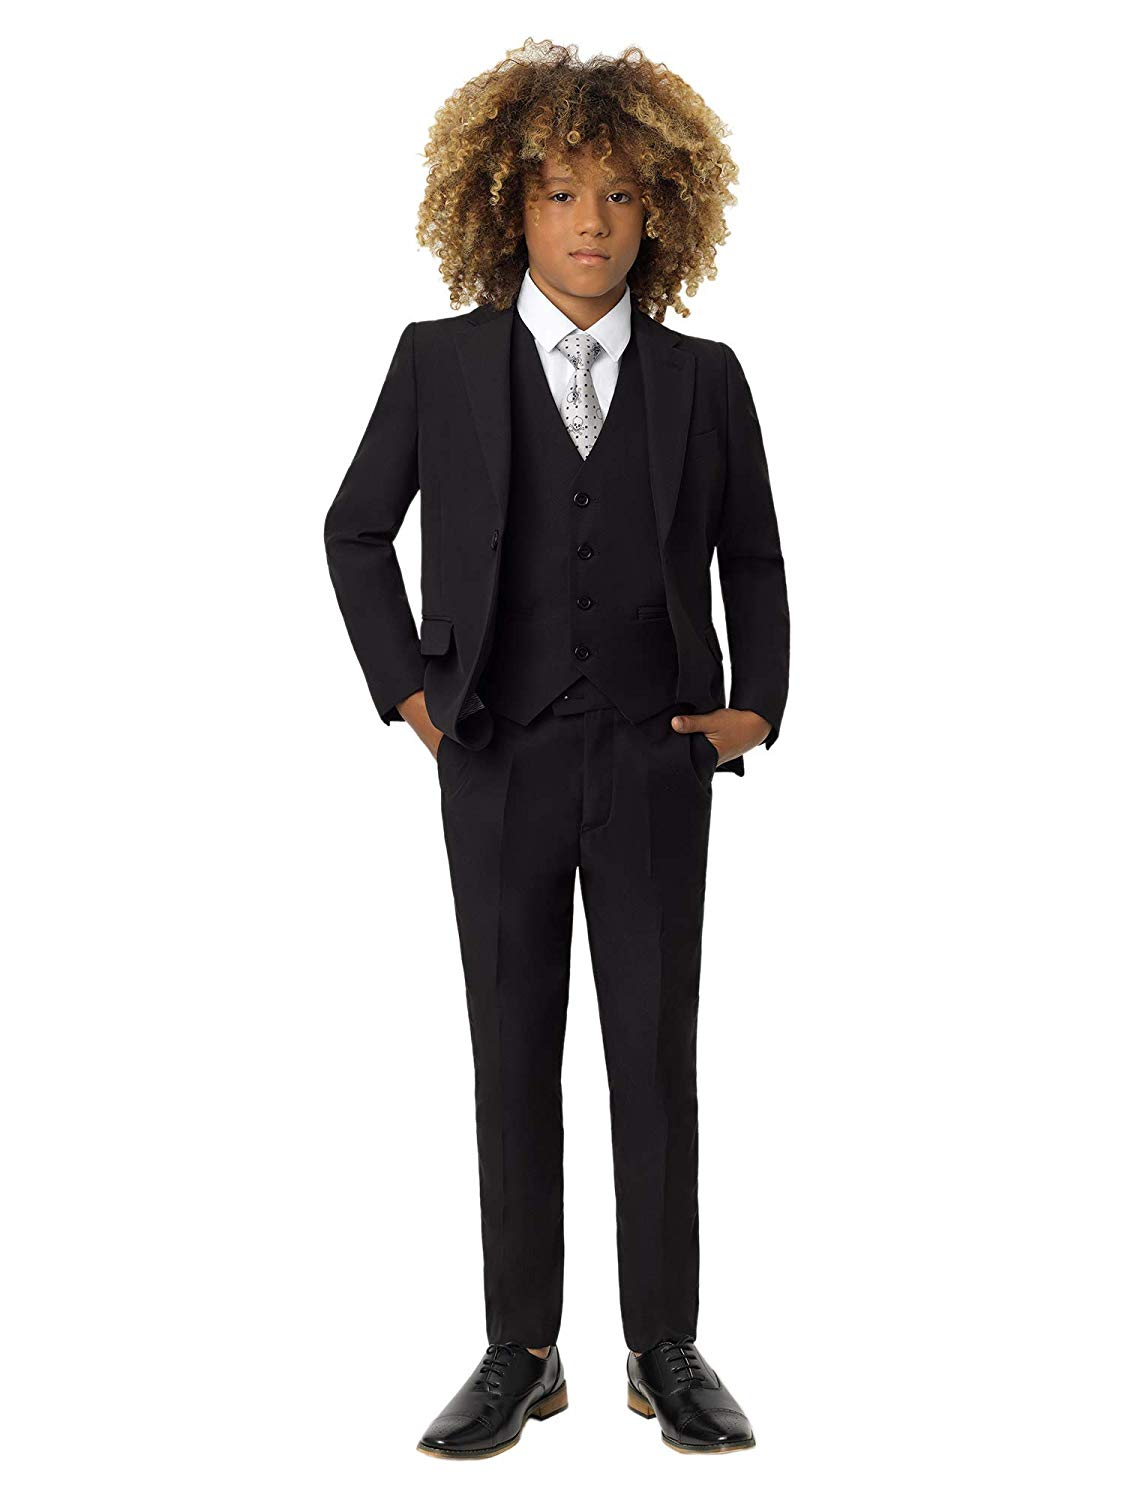 0cdf9dbd4a Get Quotations · Roco Boys Modern Fit Suit